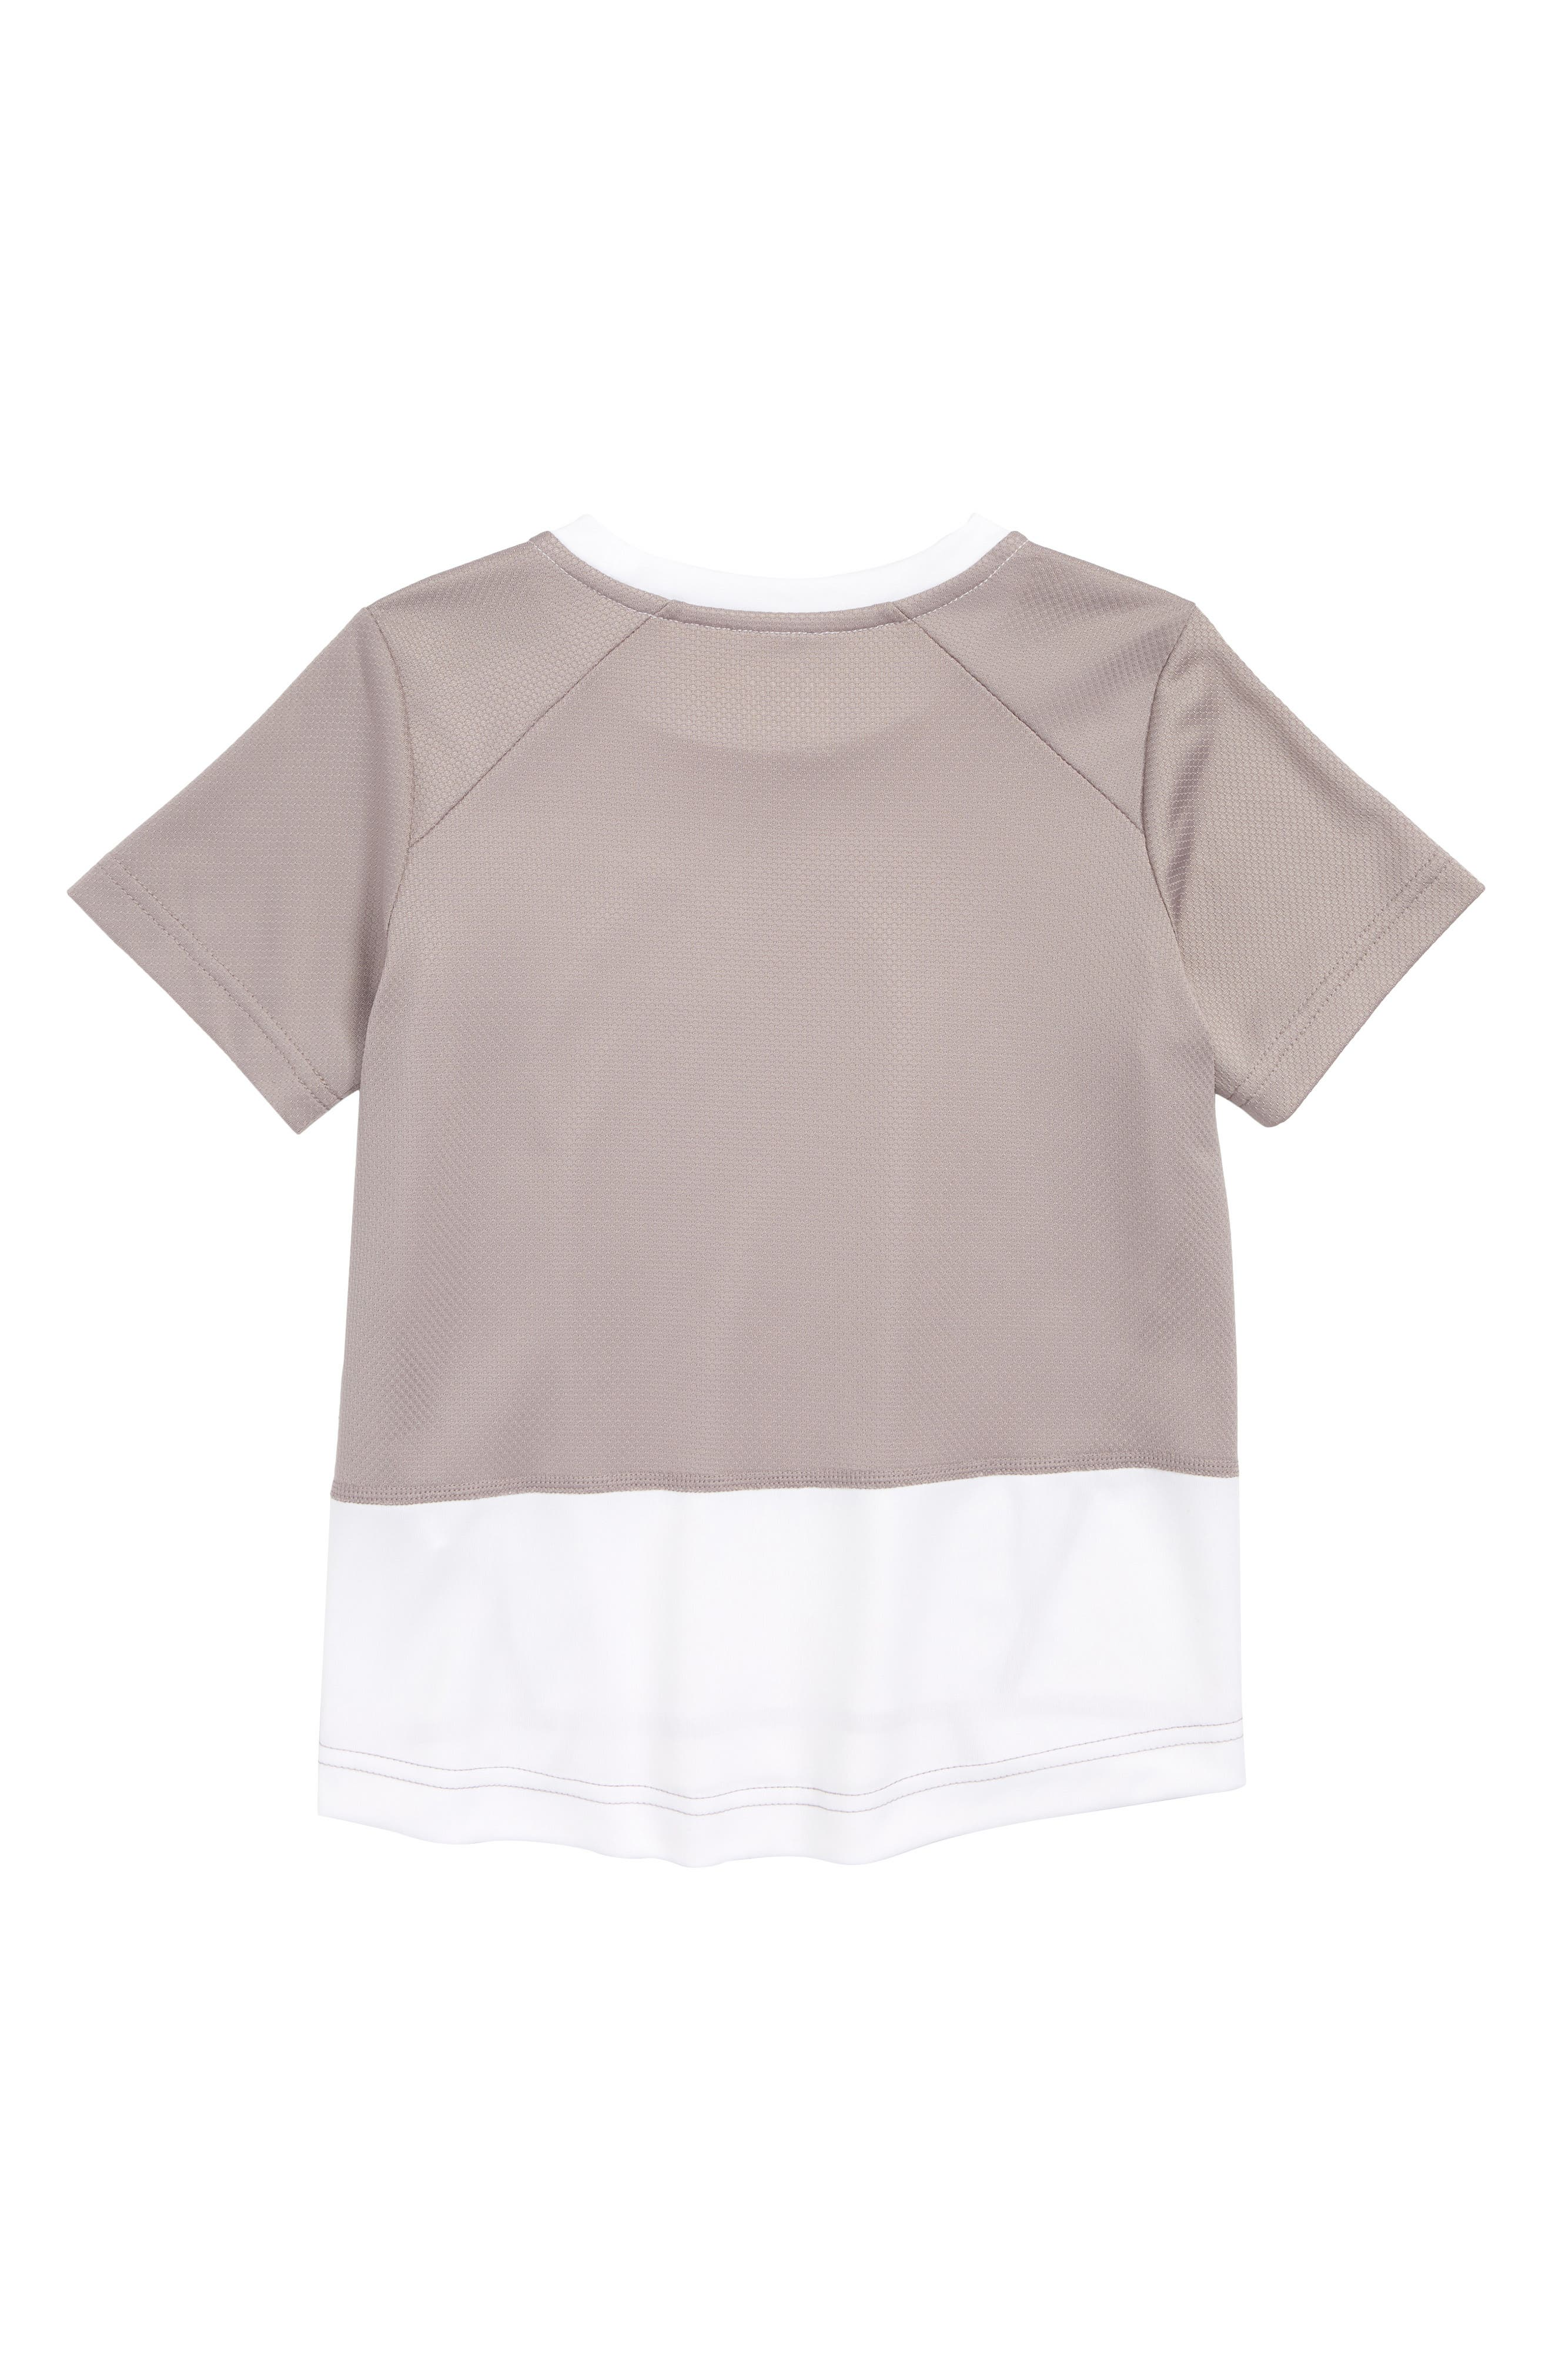 Dry INSTACOOL Shirt,                             Alternate thumbnail 2, color,                             Atmosphere Gray